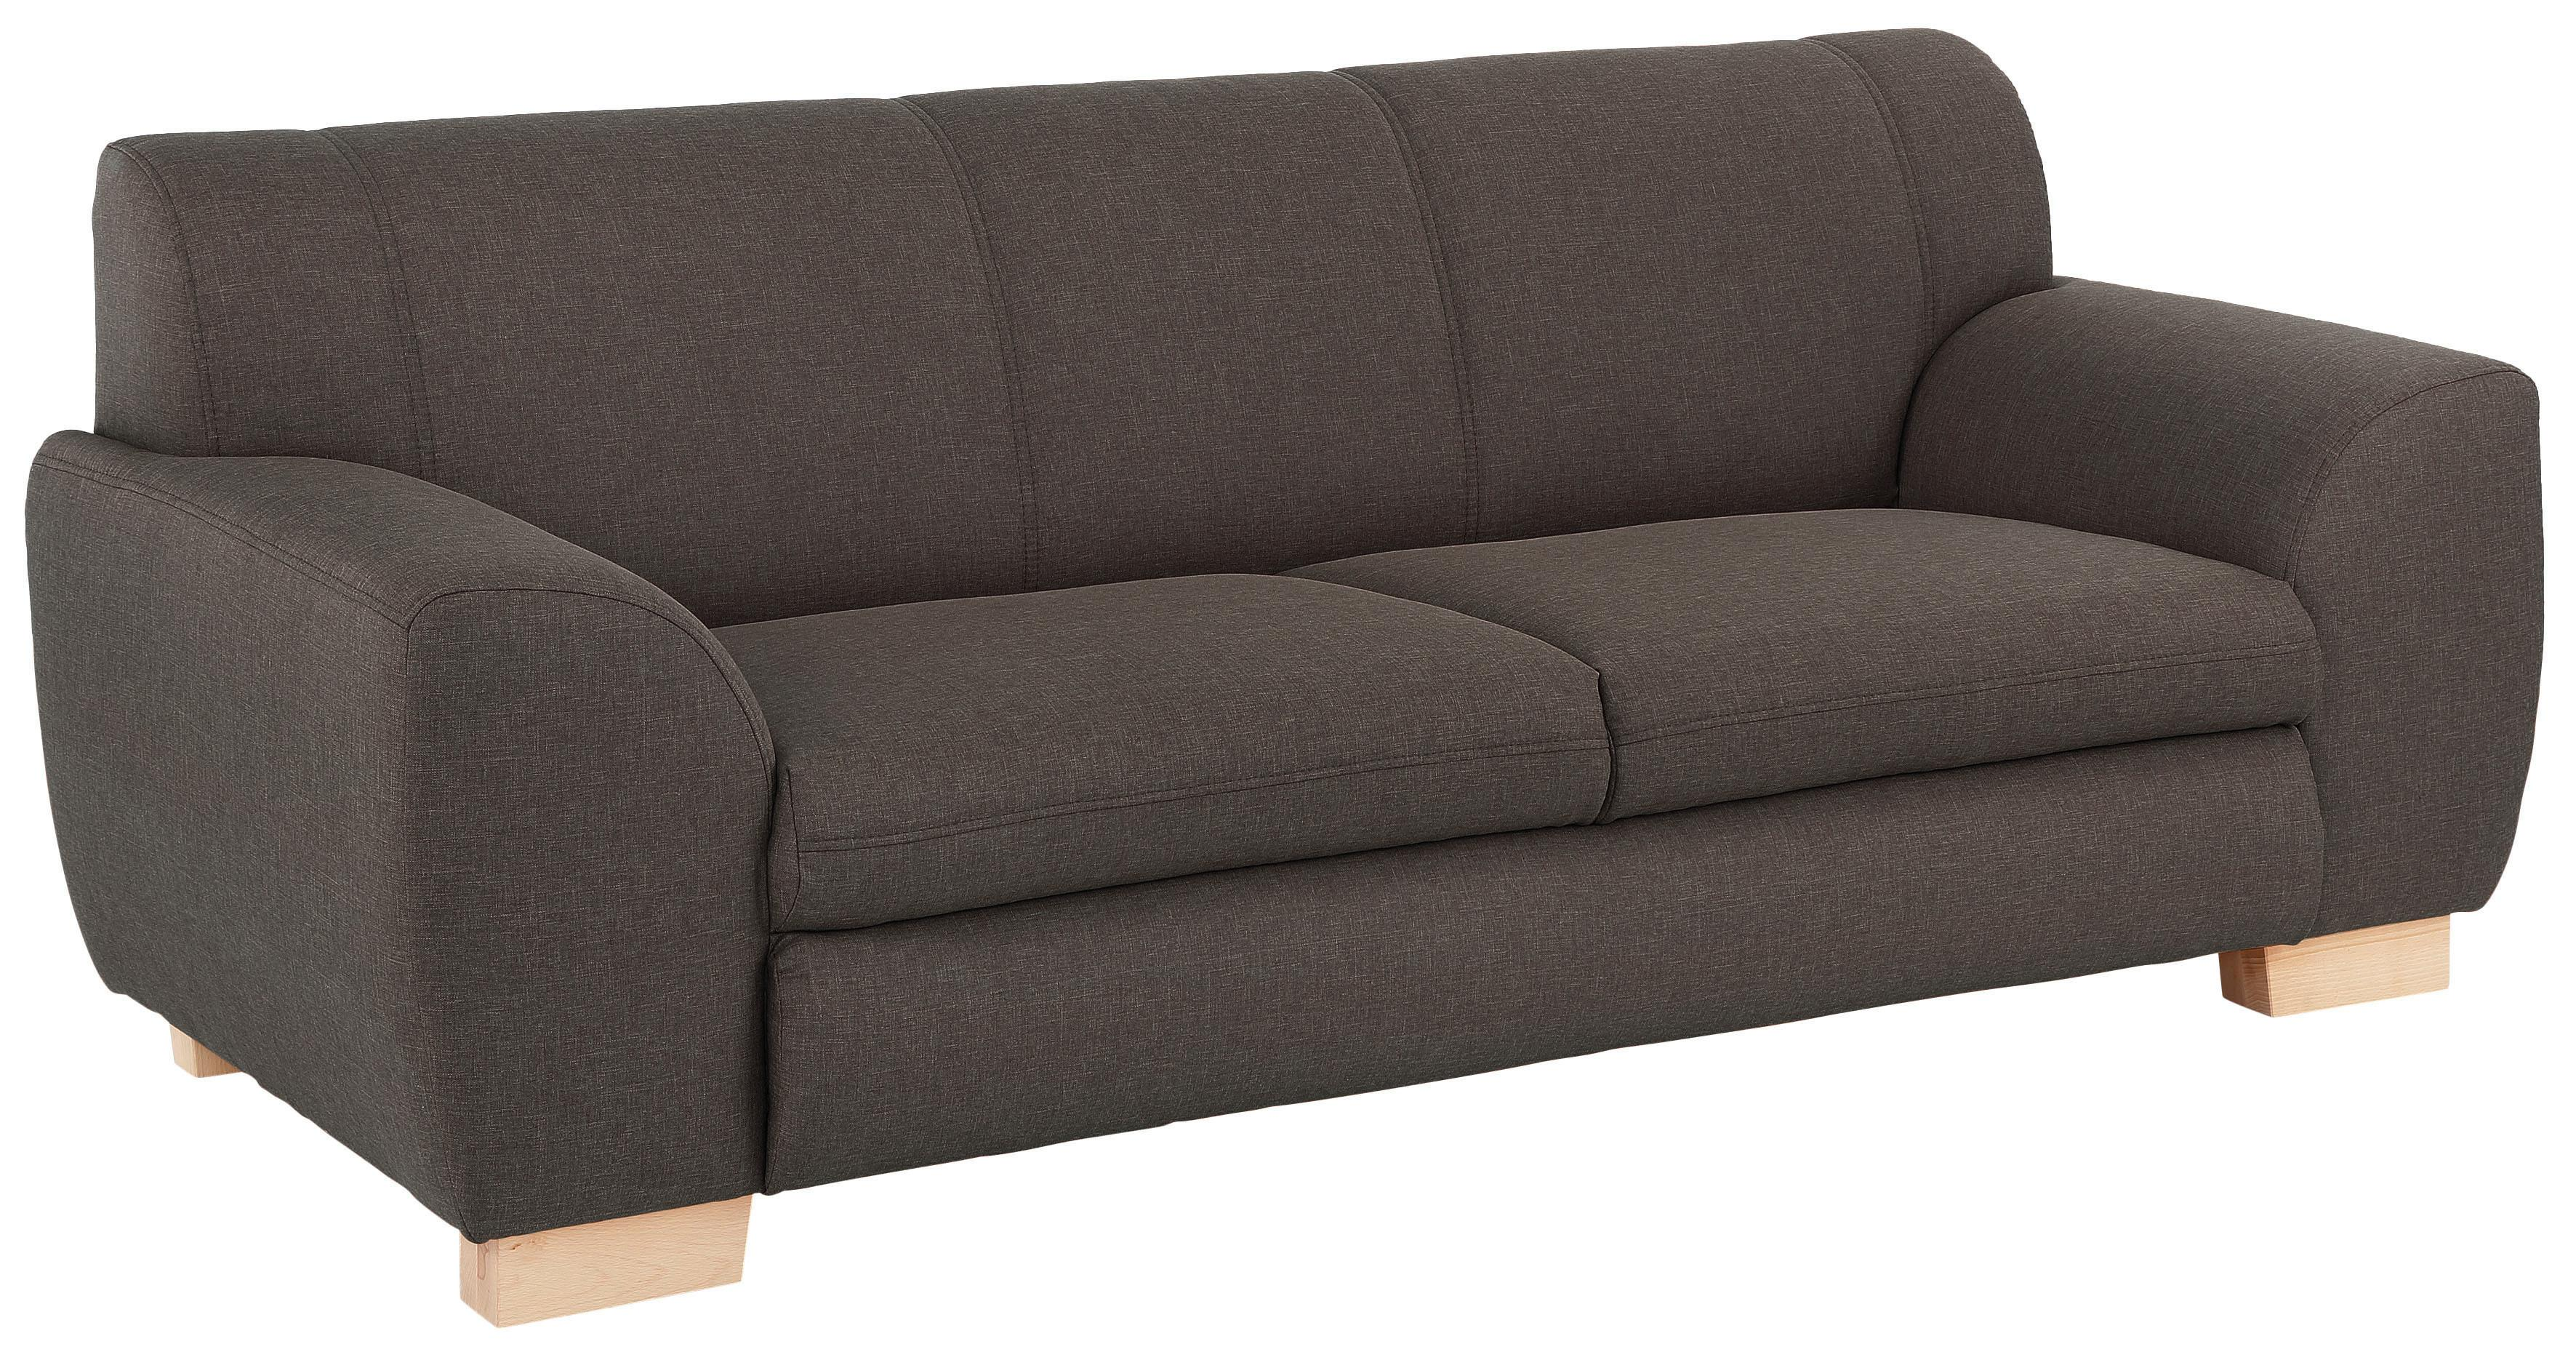 Home affaire Sofa Nika